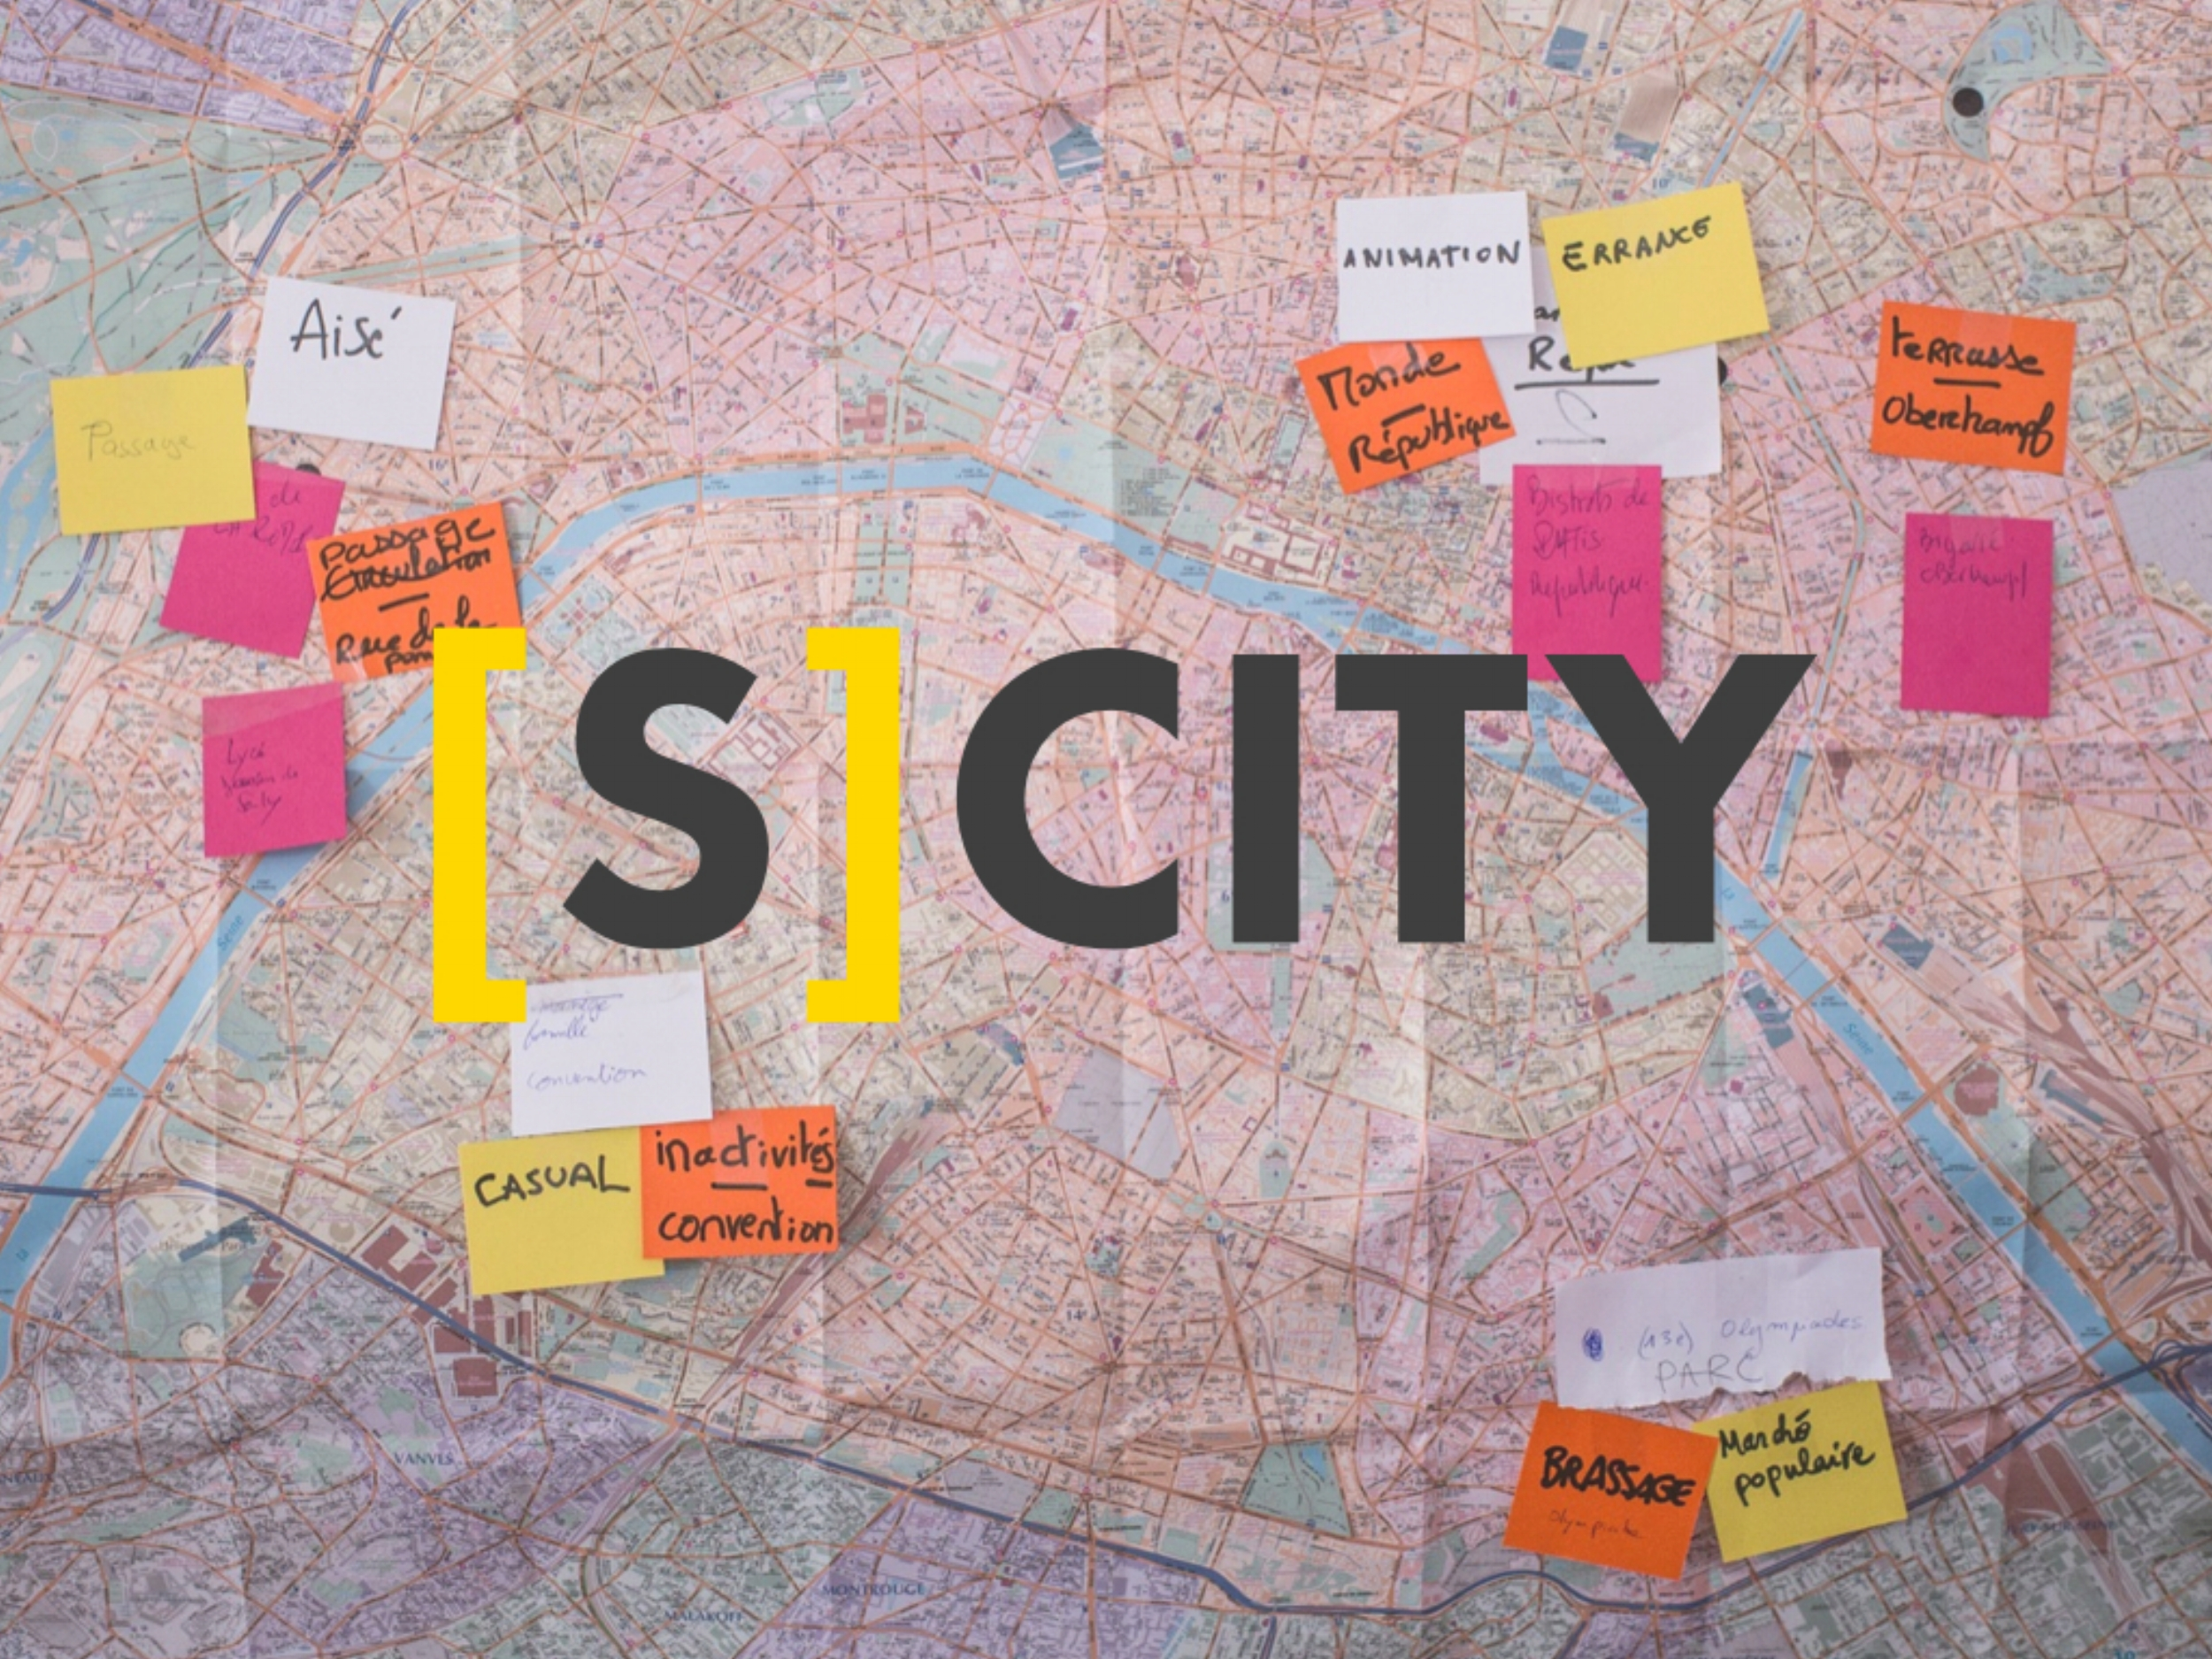 [S]CITY  Exploring the link between cognitive sciences and urbanism